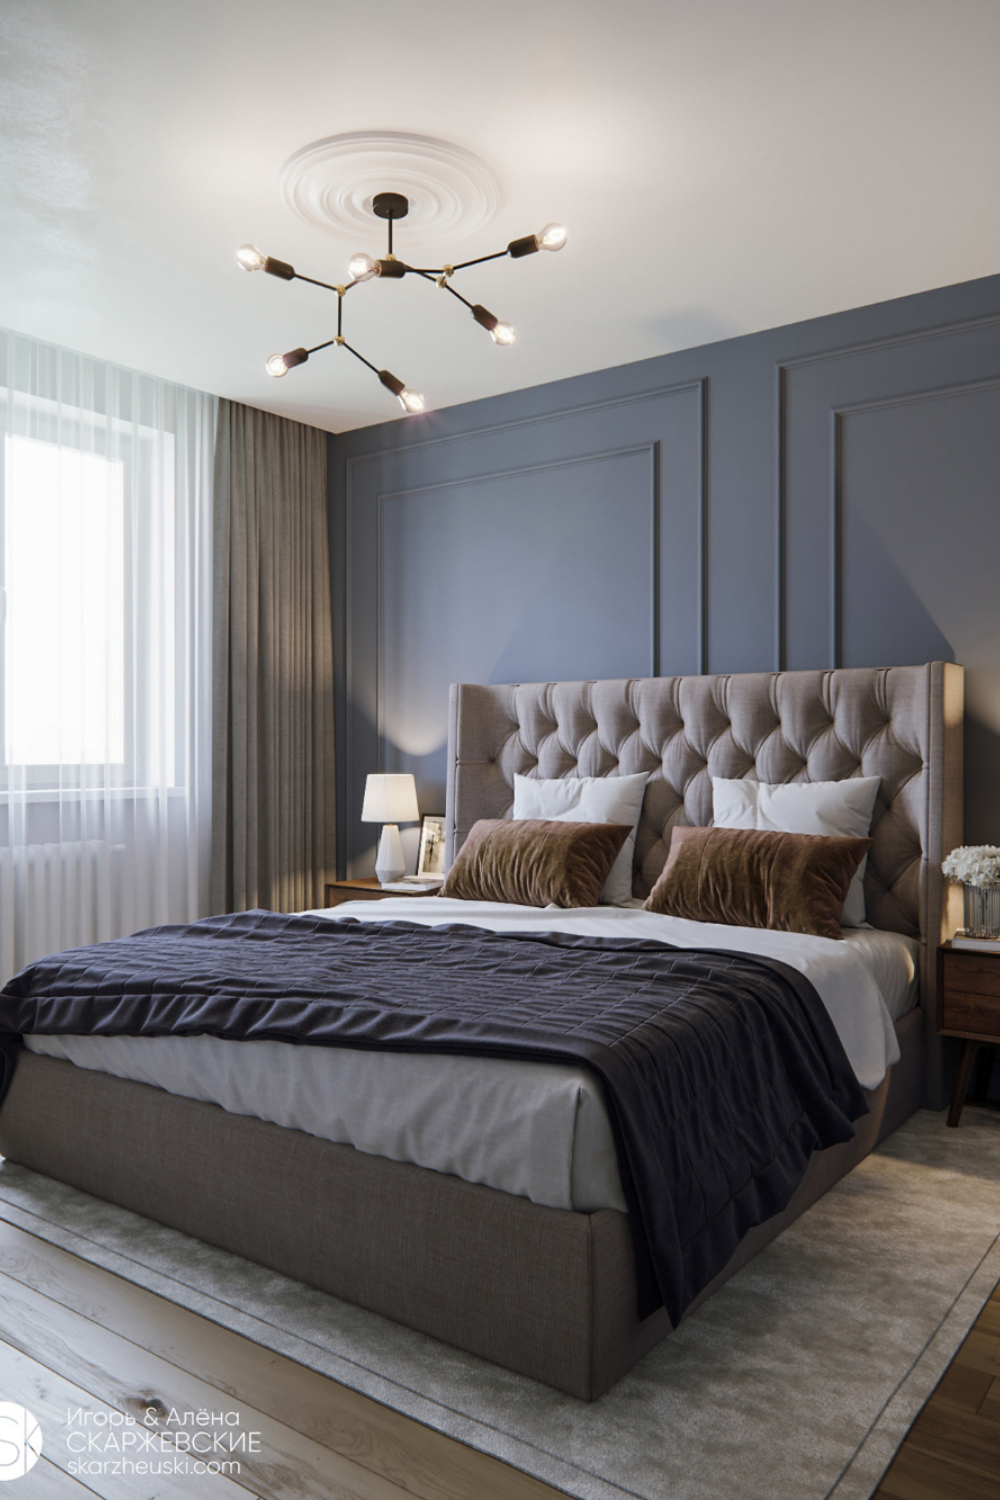 Boutique Hotel Bedrooms: Pin On Bedroom Hotel